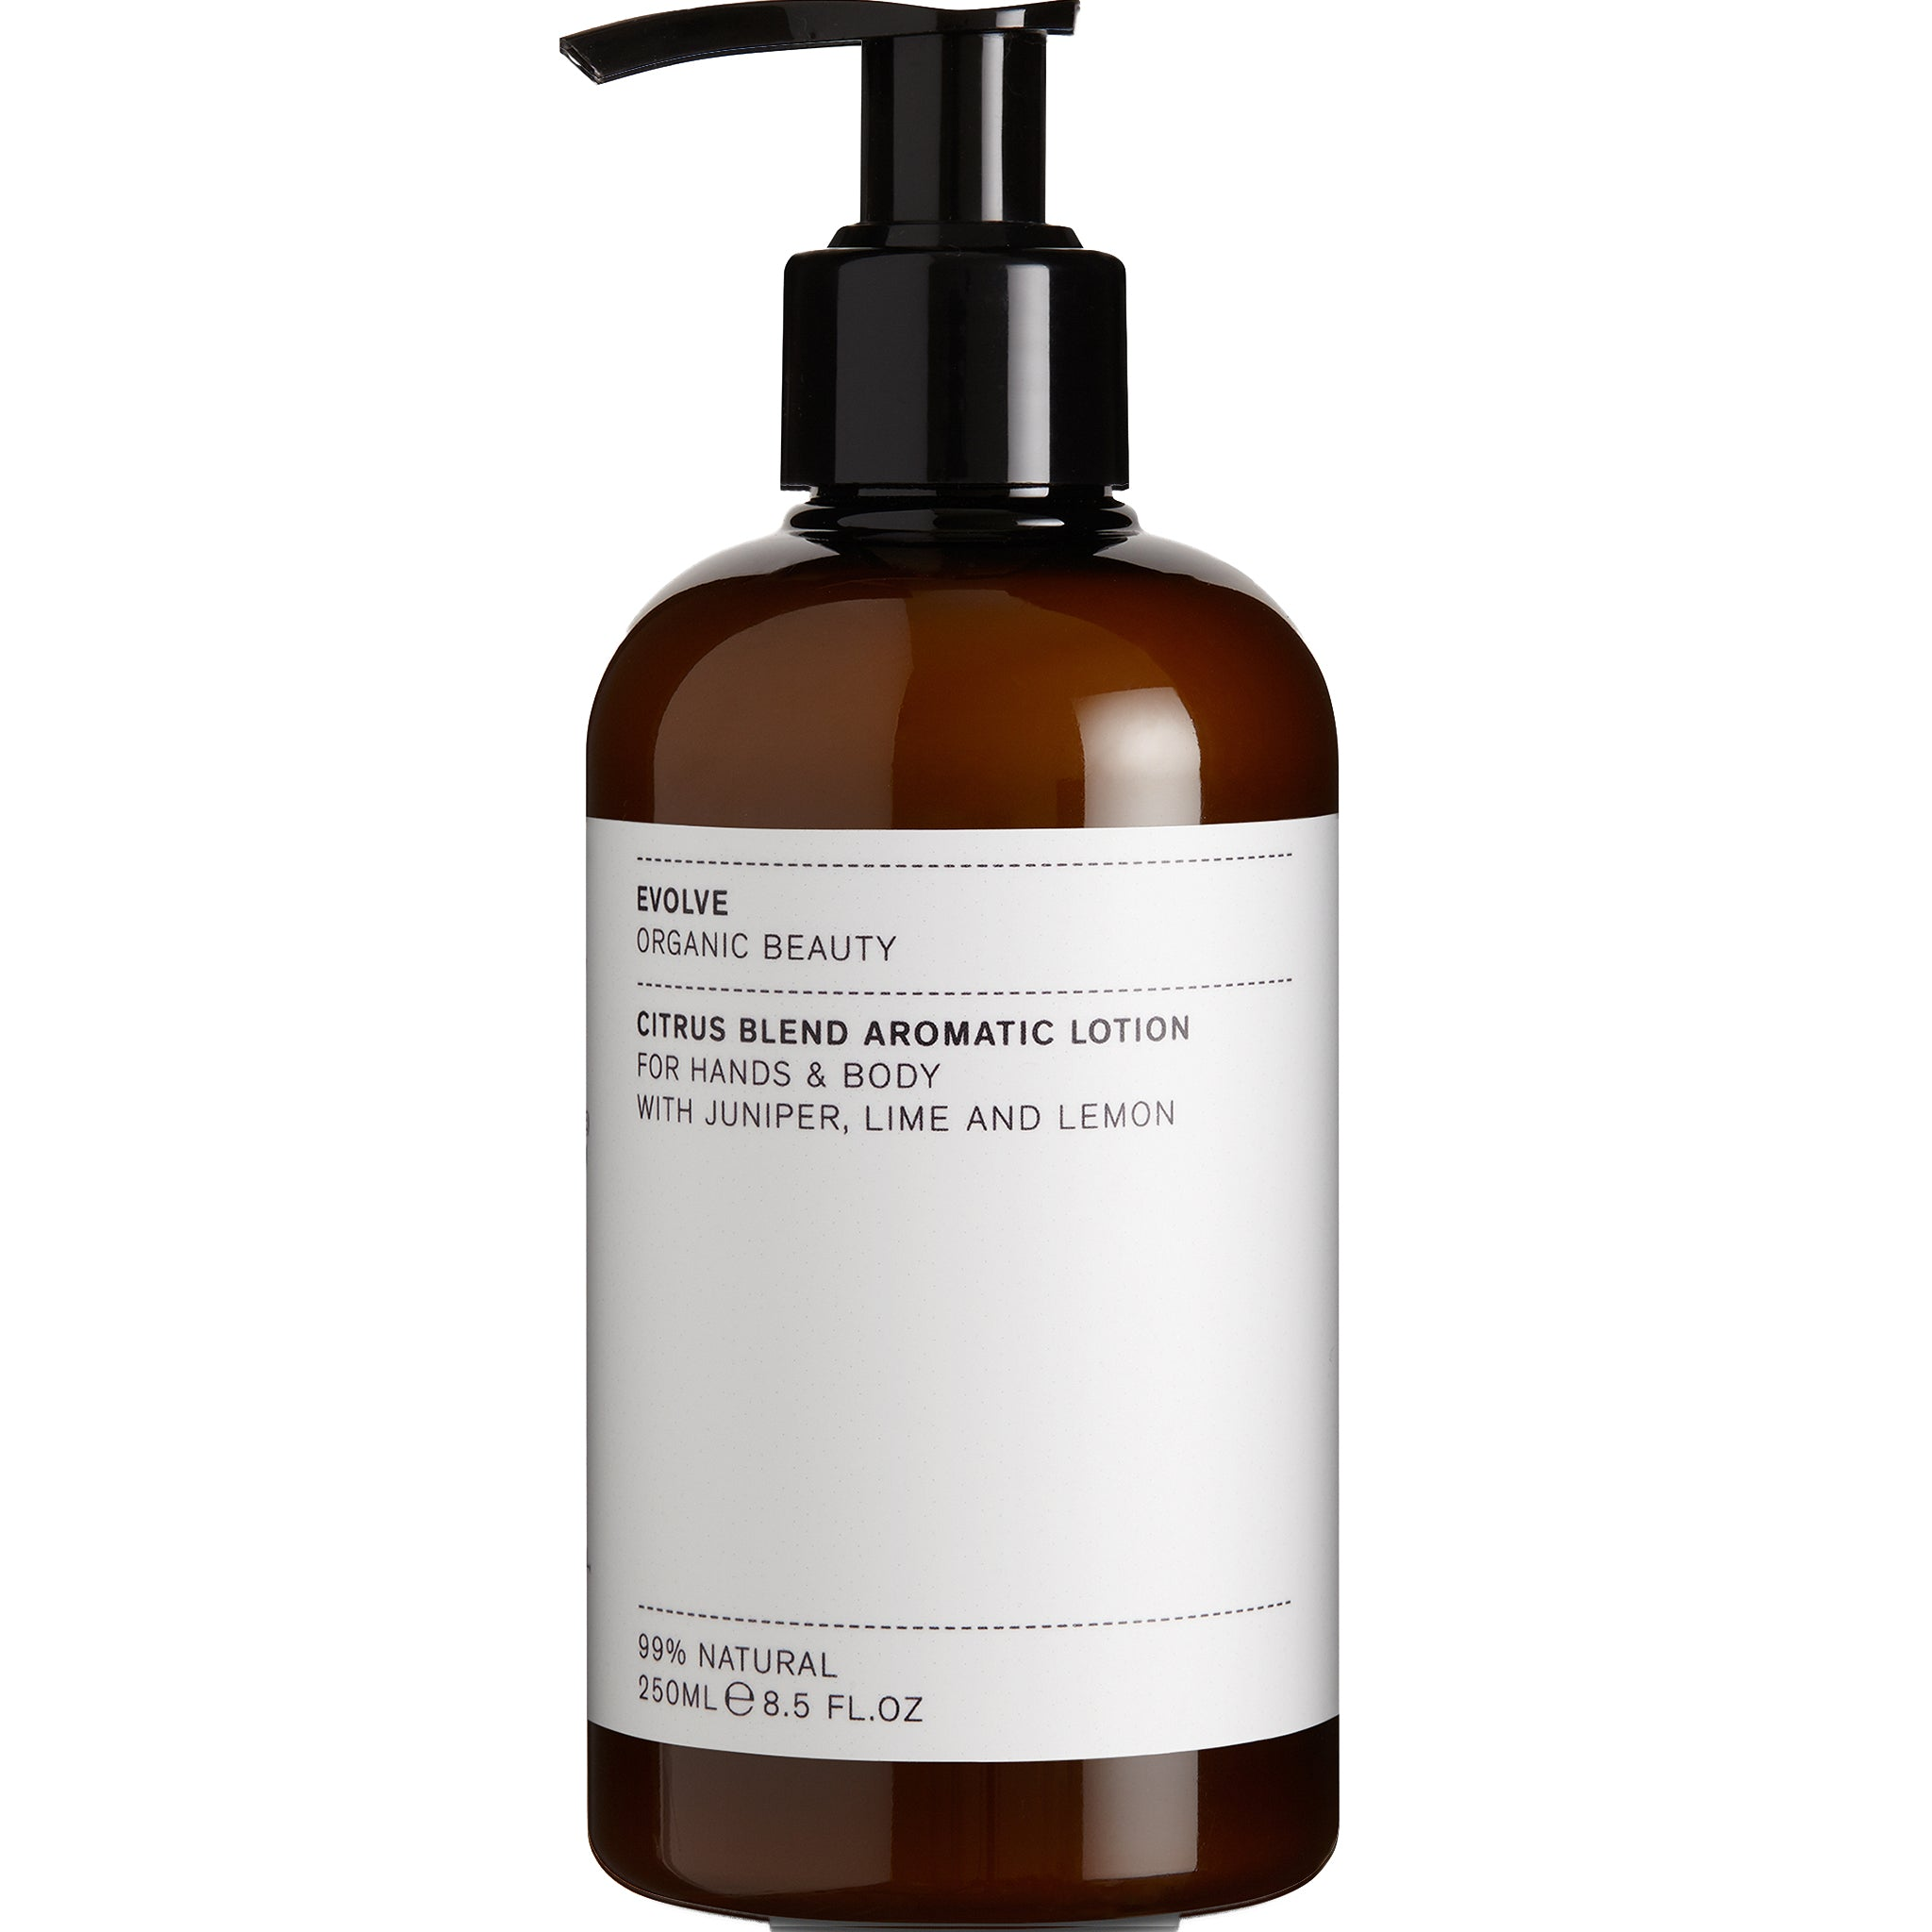 Citrus Blend Aromatic Lotion